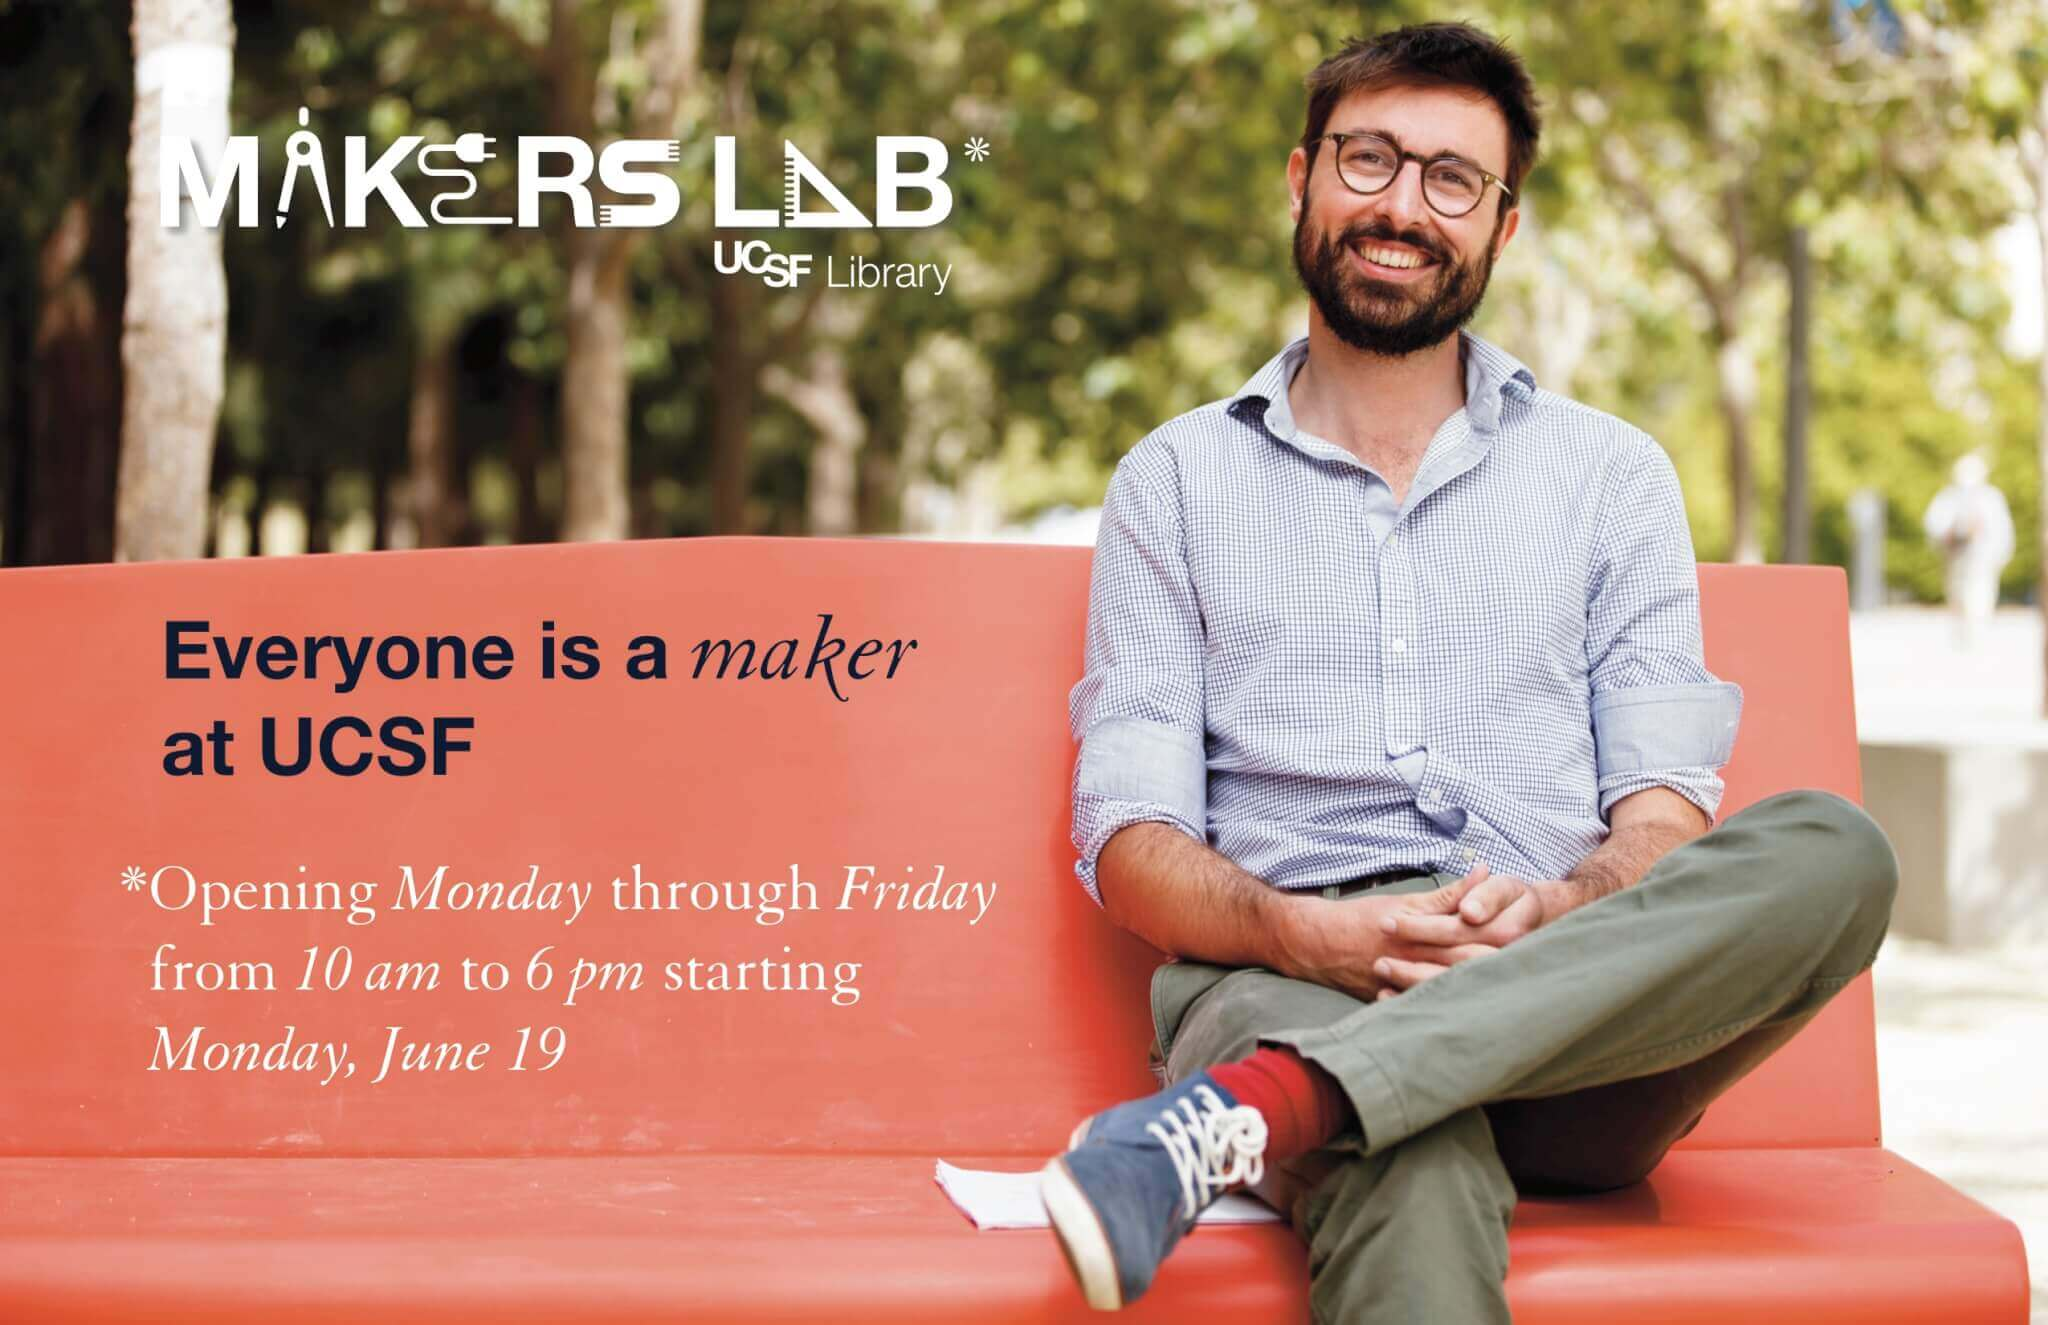 Makers Lab 5 days a week signage